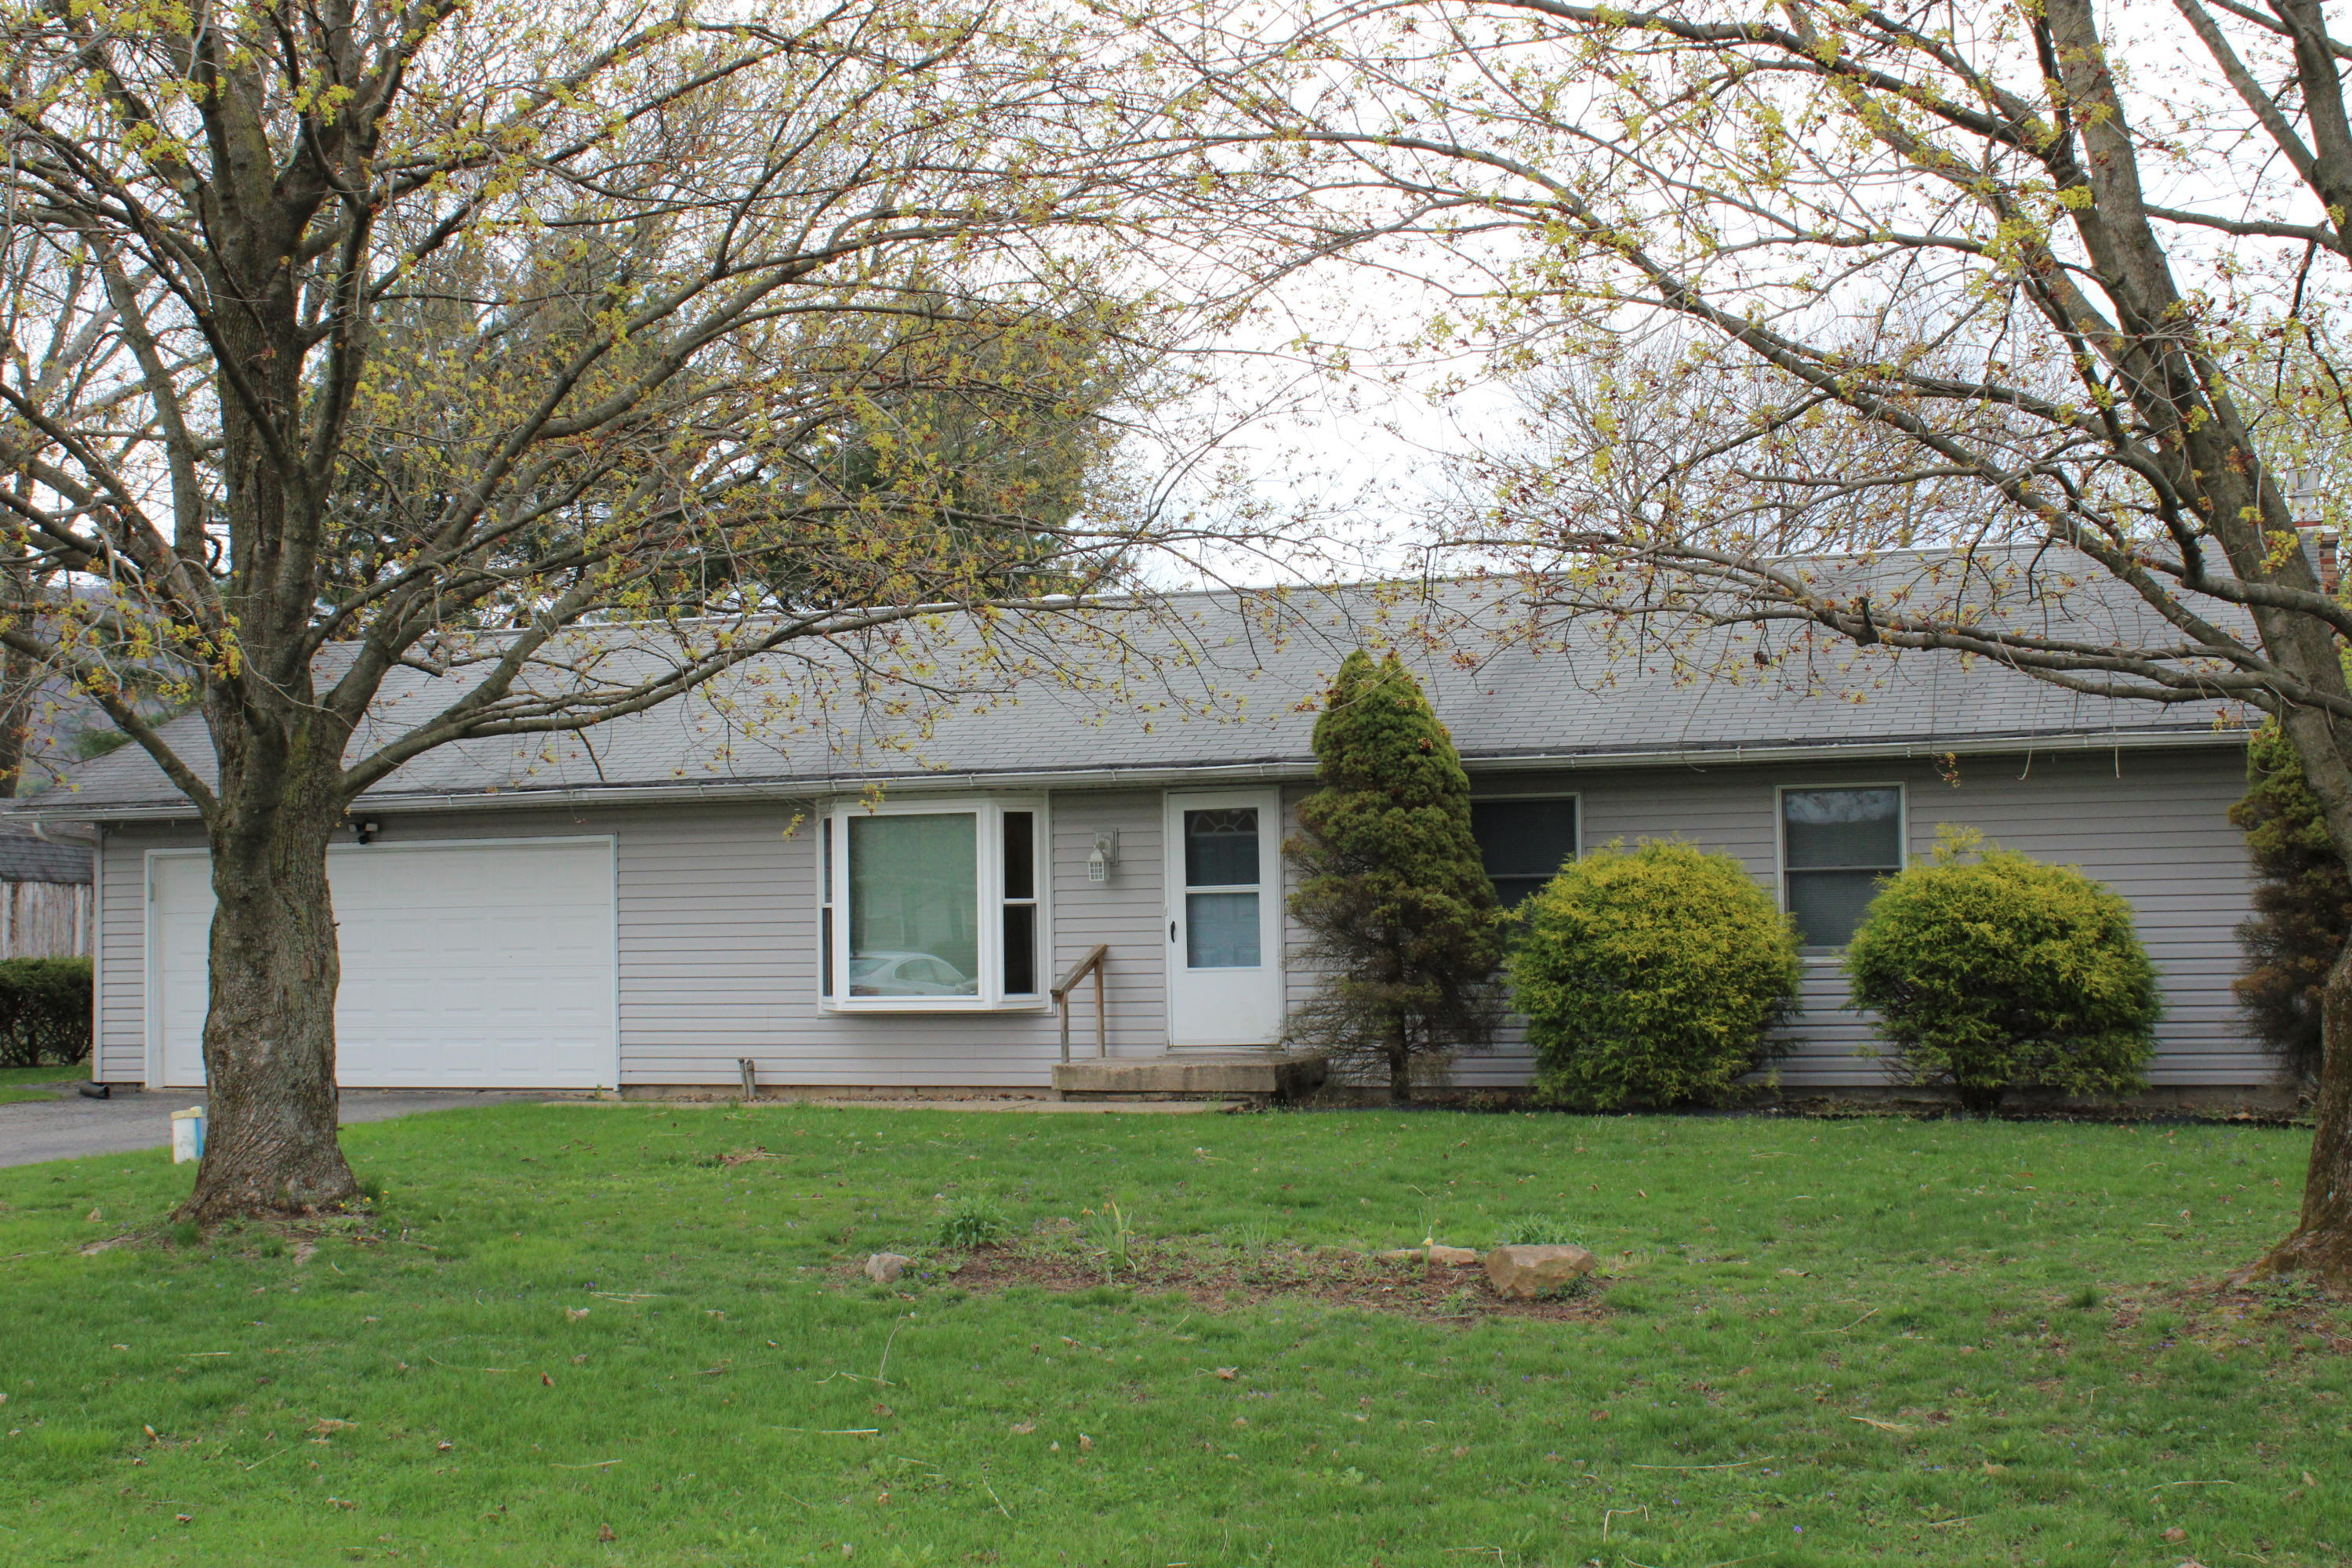 141 KUHNS ROAD, Montoursville, PA 17754, 3 Bedrooms Bedrooms, ,2 BathroomsBathrooms,Residential,For sale,KUHNS,WB-92327